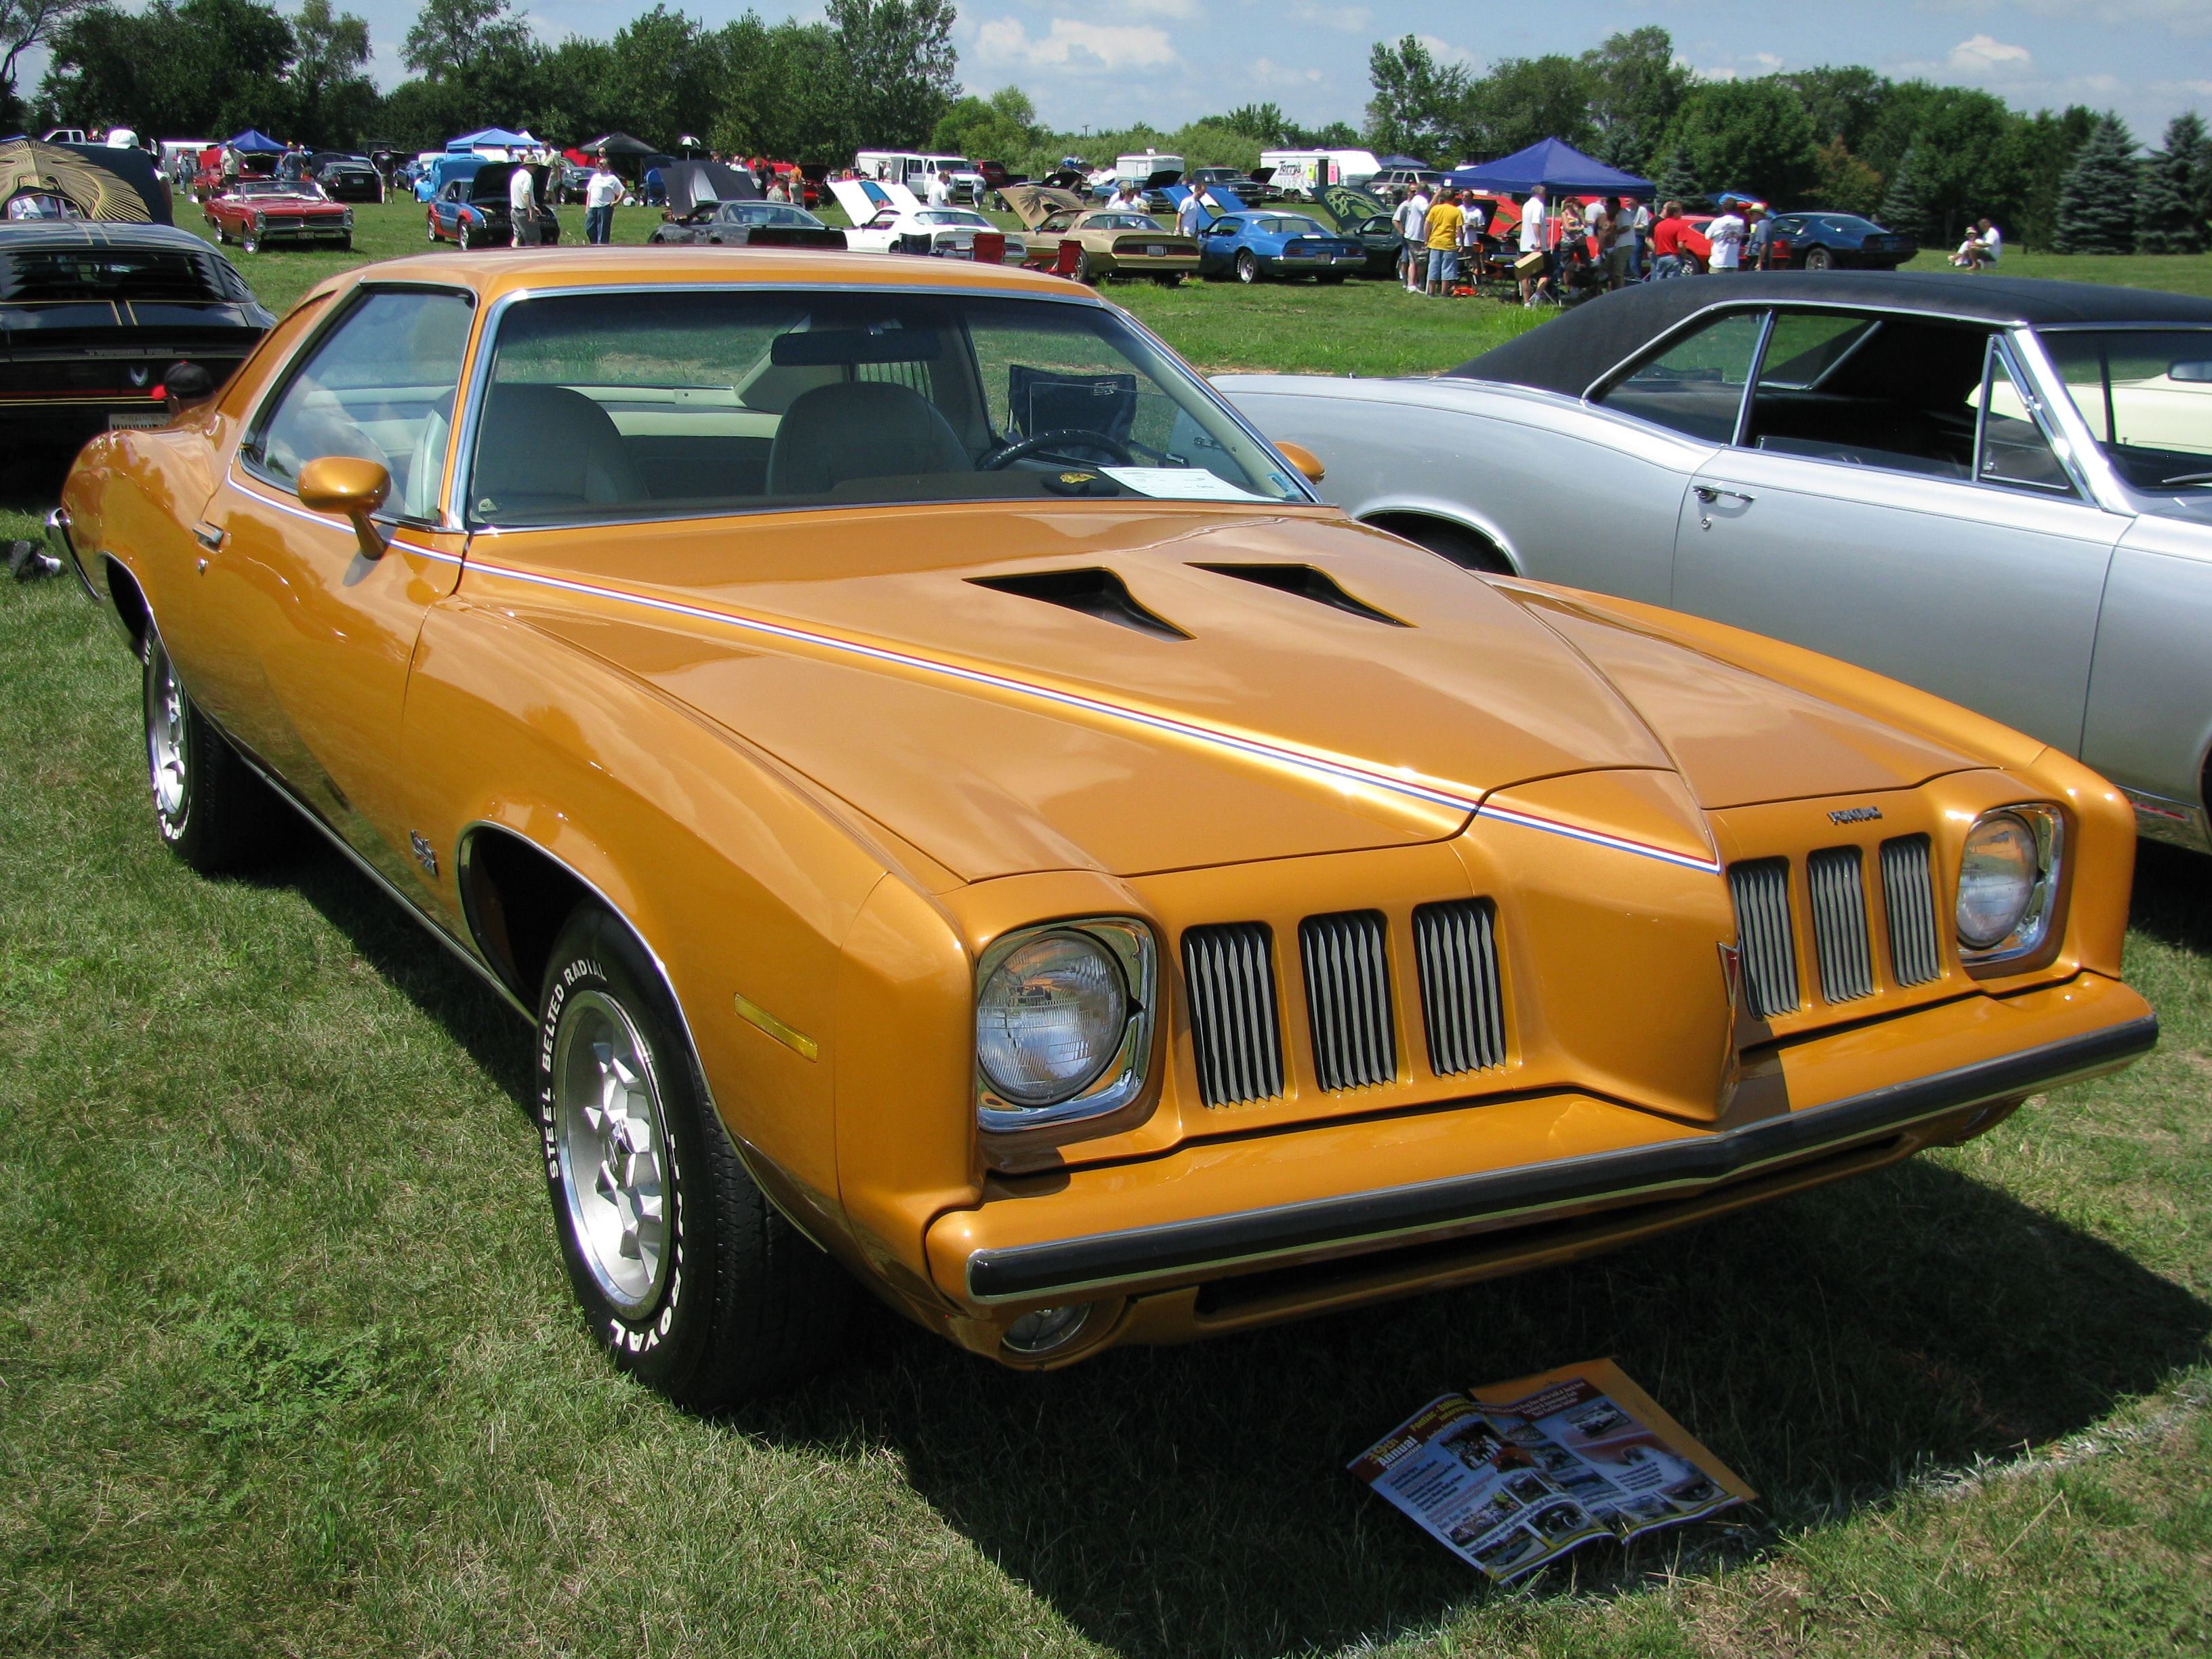 Best 20 Pontiac grand am ideas on Pinterestno signup required